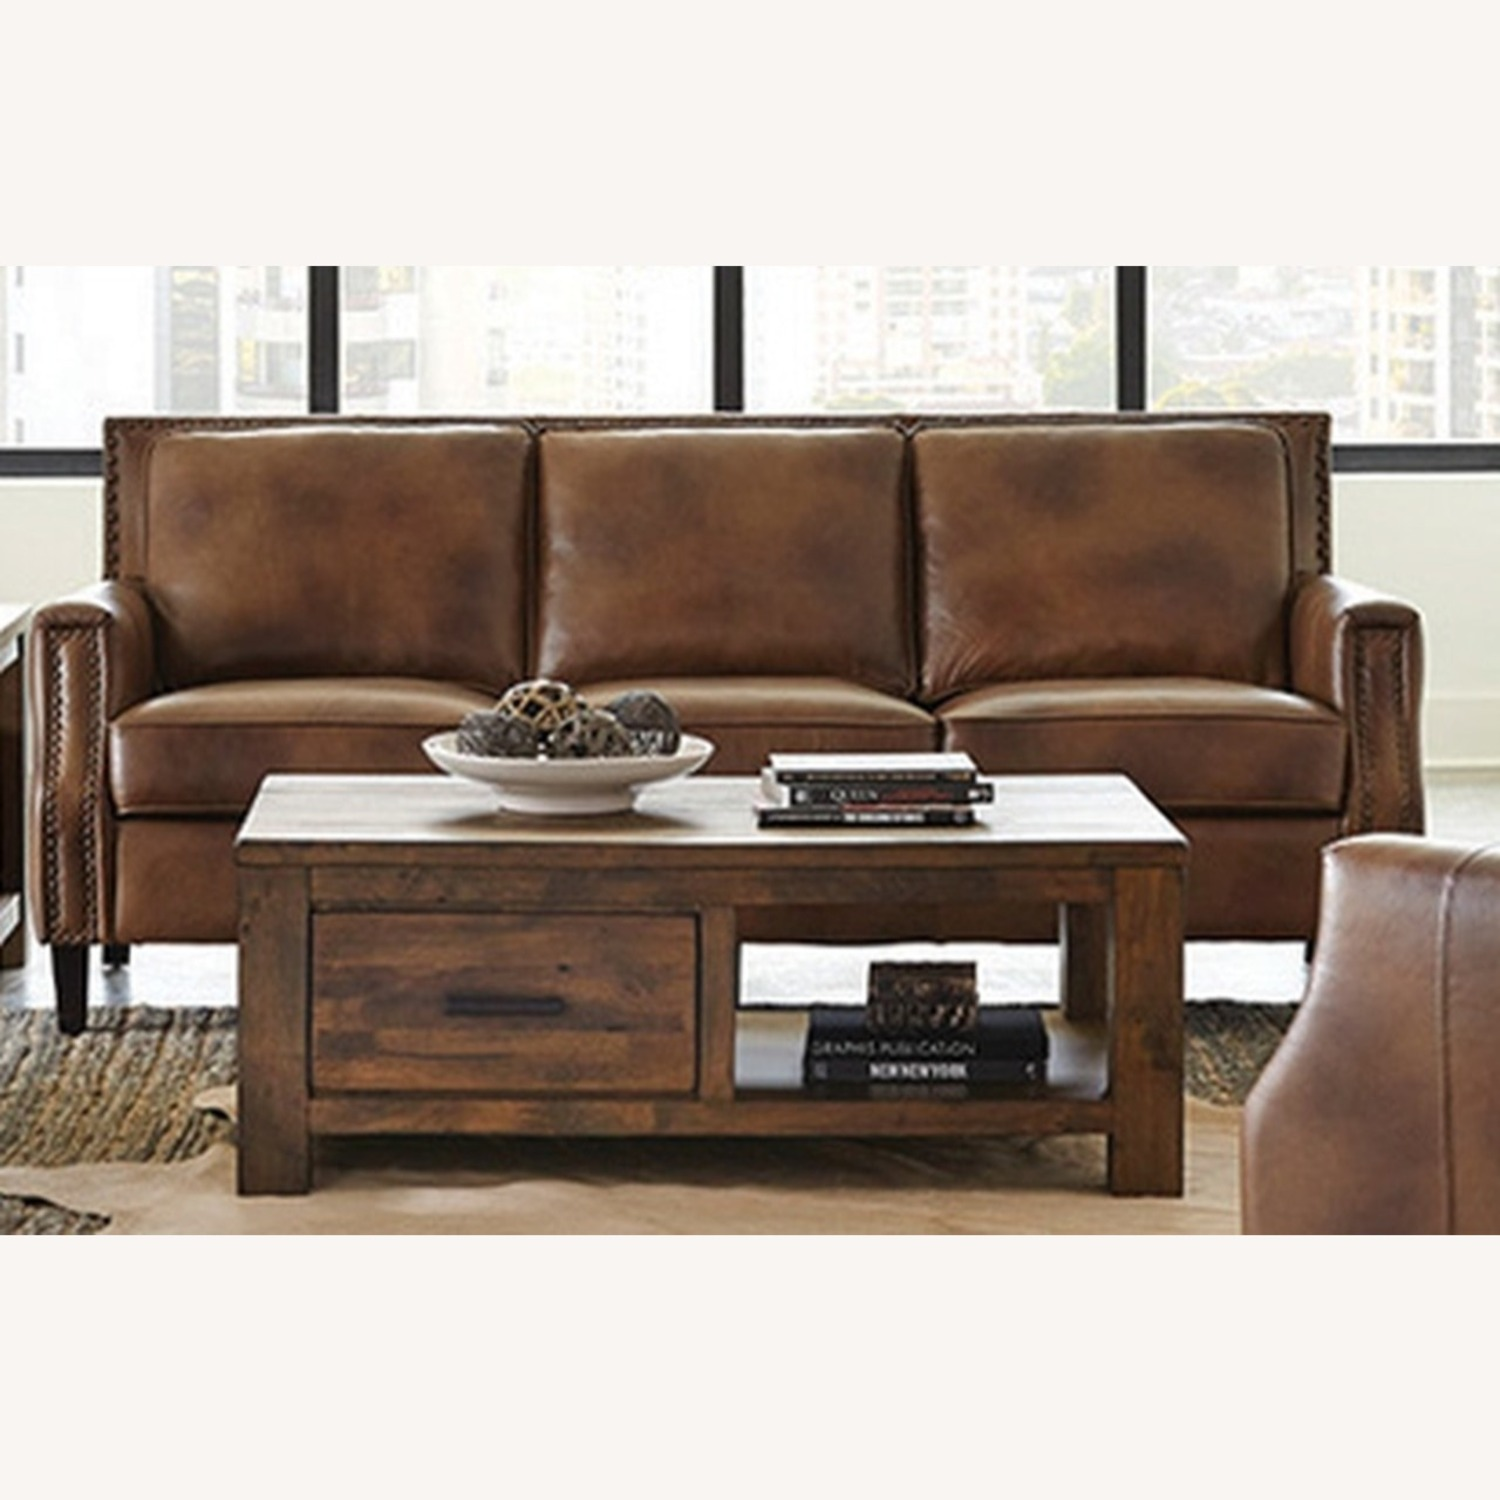 Sofa In Brown Leather Upholstery - image-0